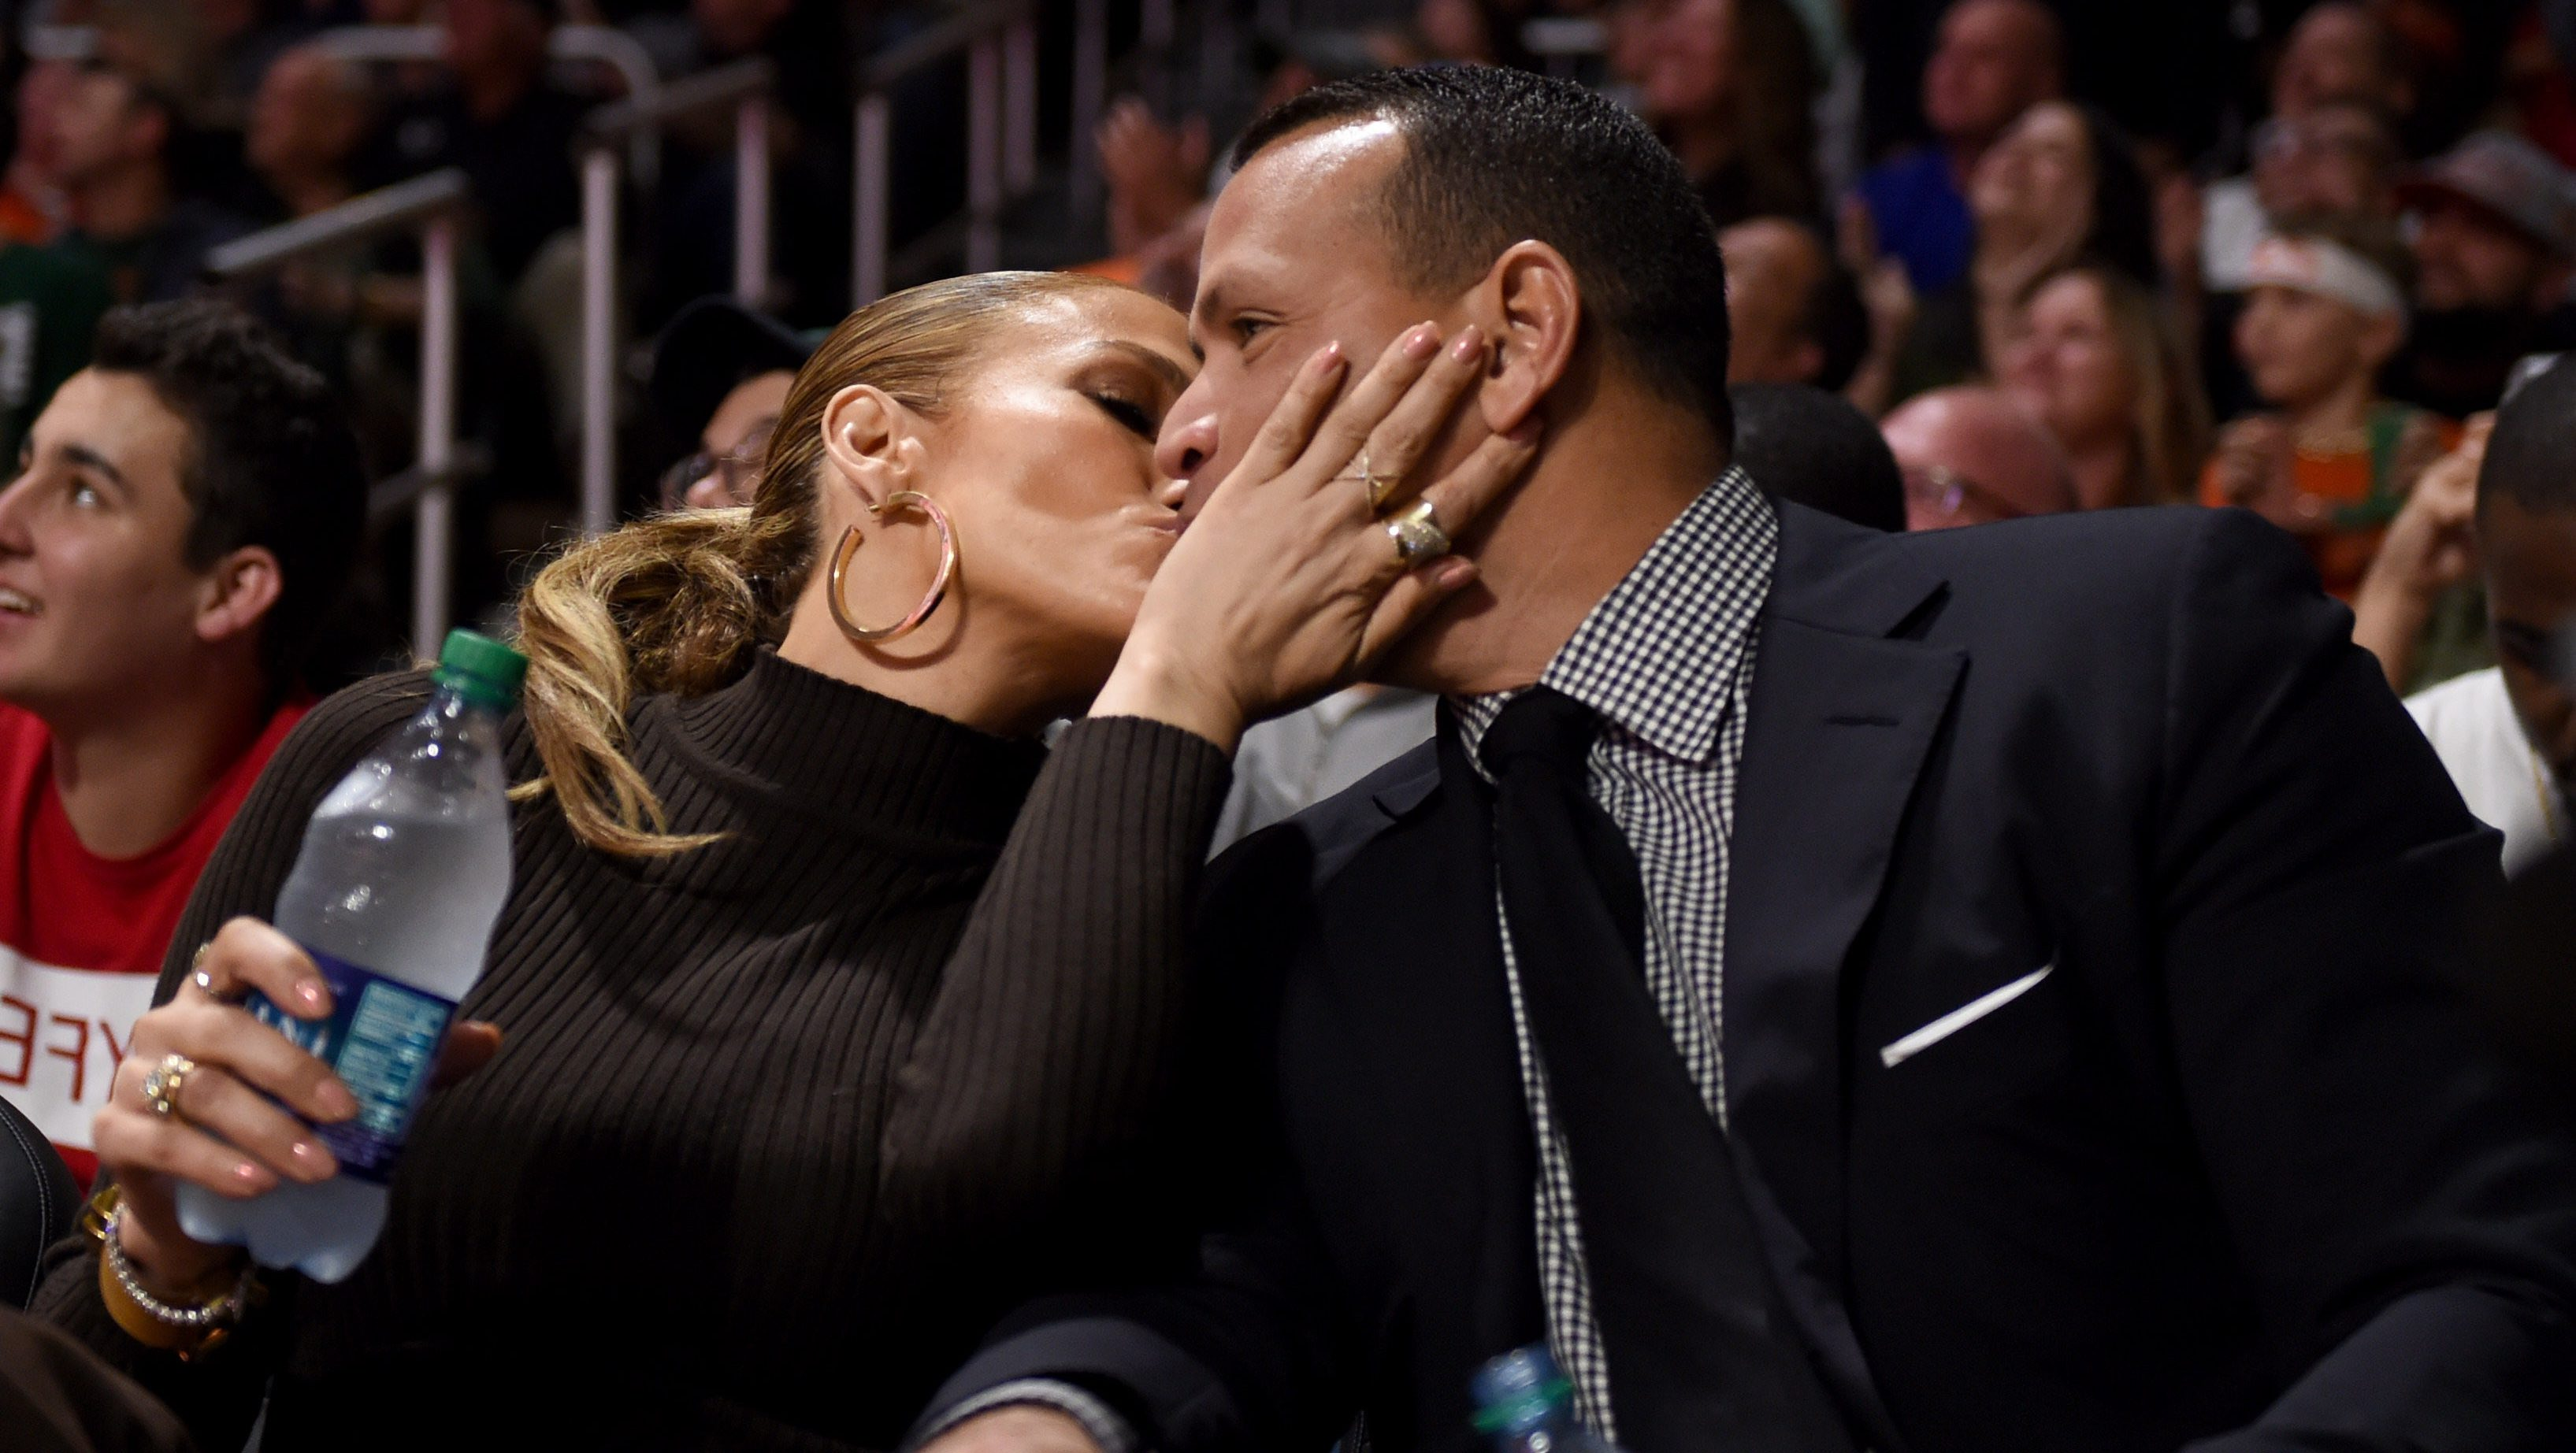 Recording artist Jennifer Lopez and former New York Yankees baseball player Alex Rodriguez kiss during an NCAA basketball game between the Miami Hurricanes and the Duke Blue Devils at Watsco Center.